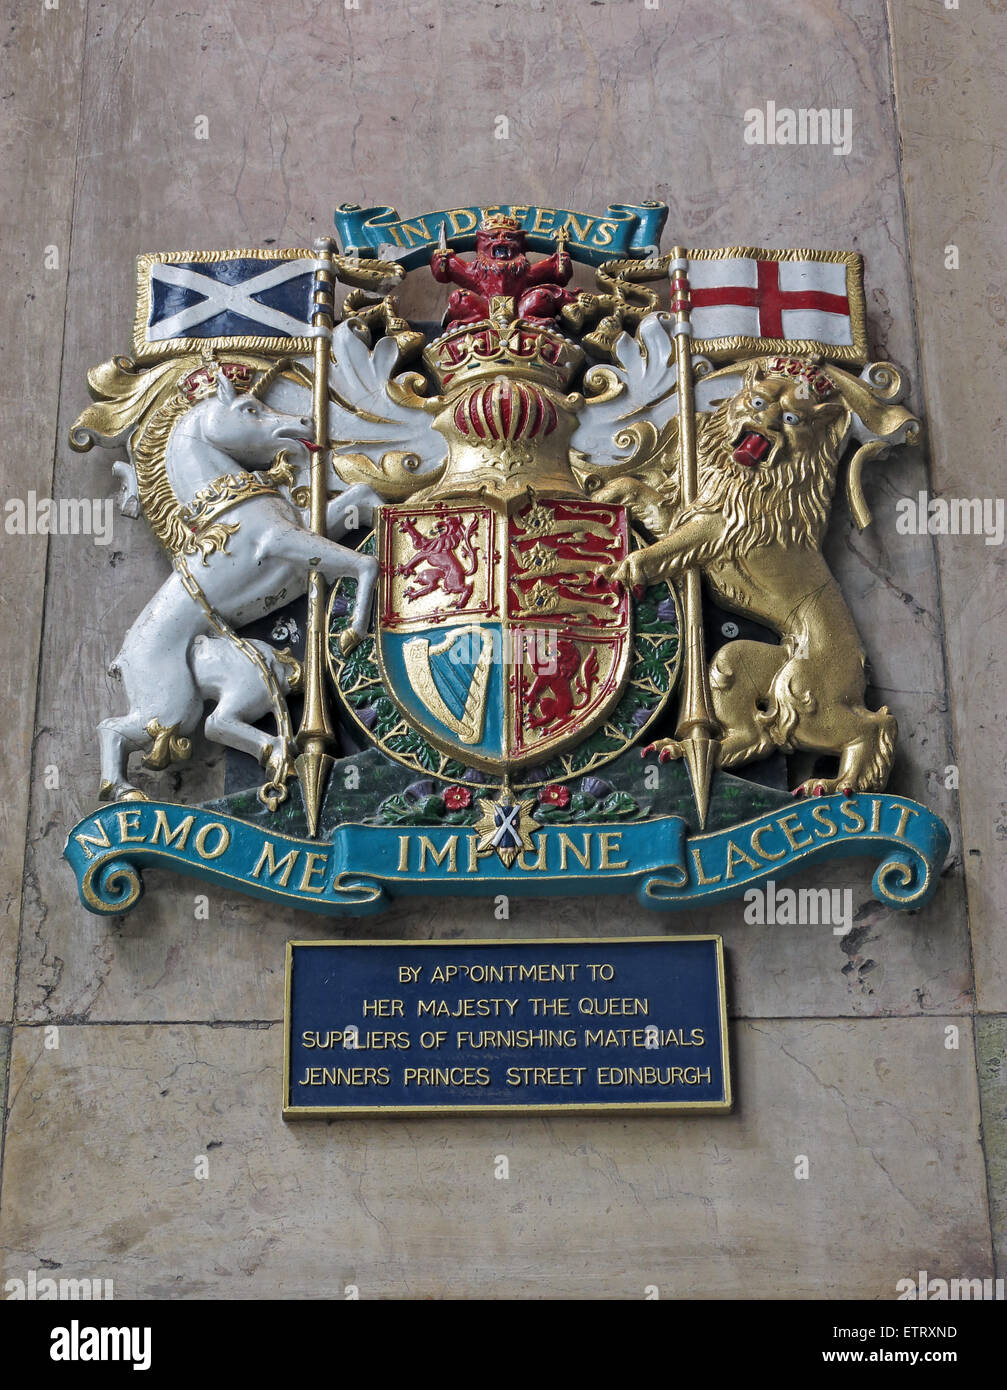 Jenners Department Store Princes St Edinburgh Scotland UK - Crest by royal appointment - Stock Image